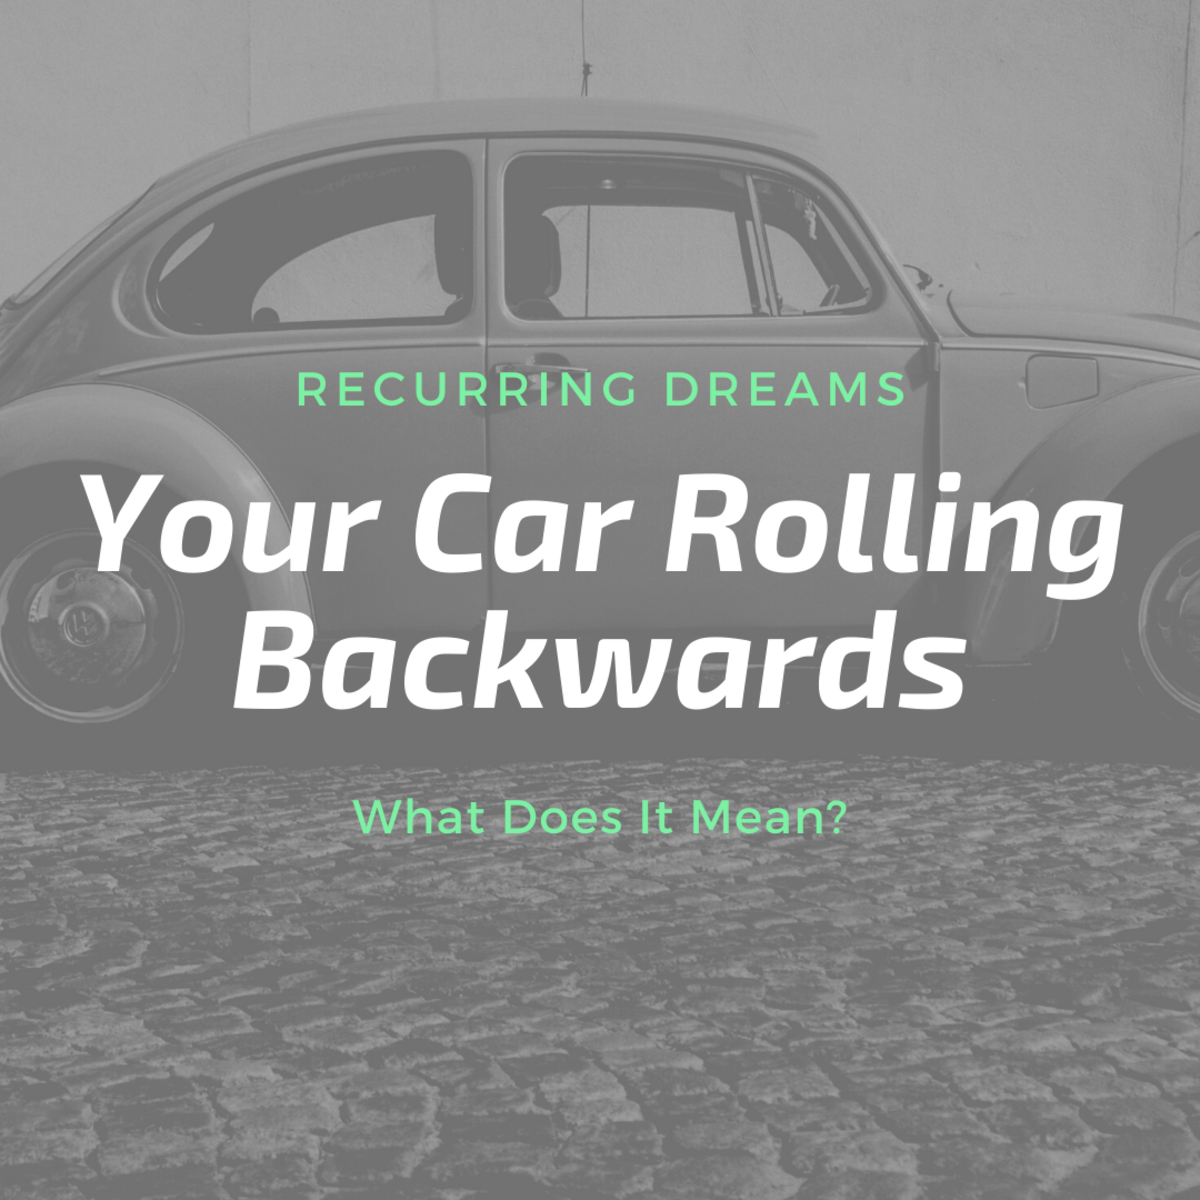 How to Interpret a Recurring Dream of Your Car Rolling Backwards